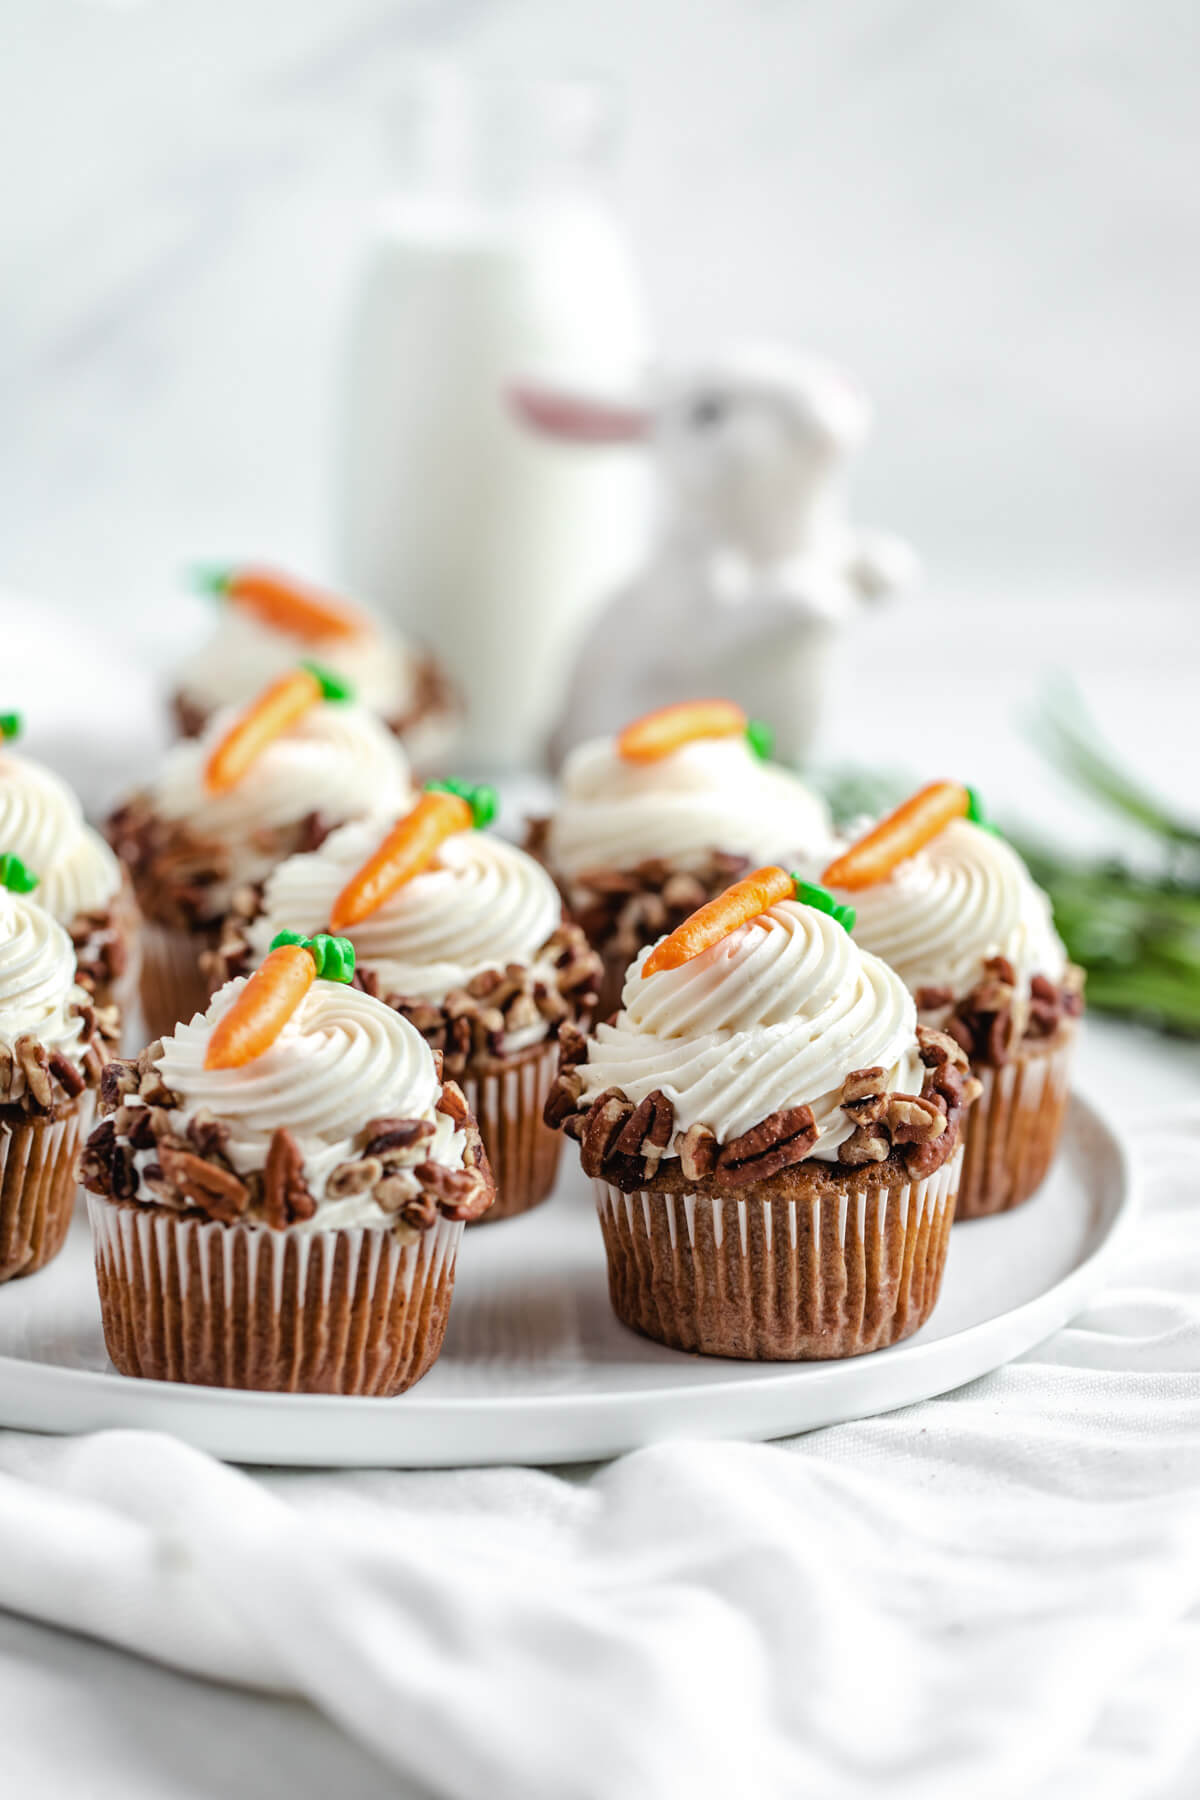 cupcakes on a white plate with carrots on top